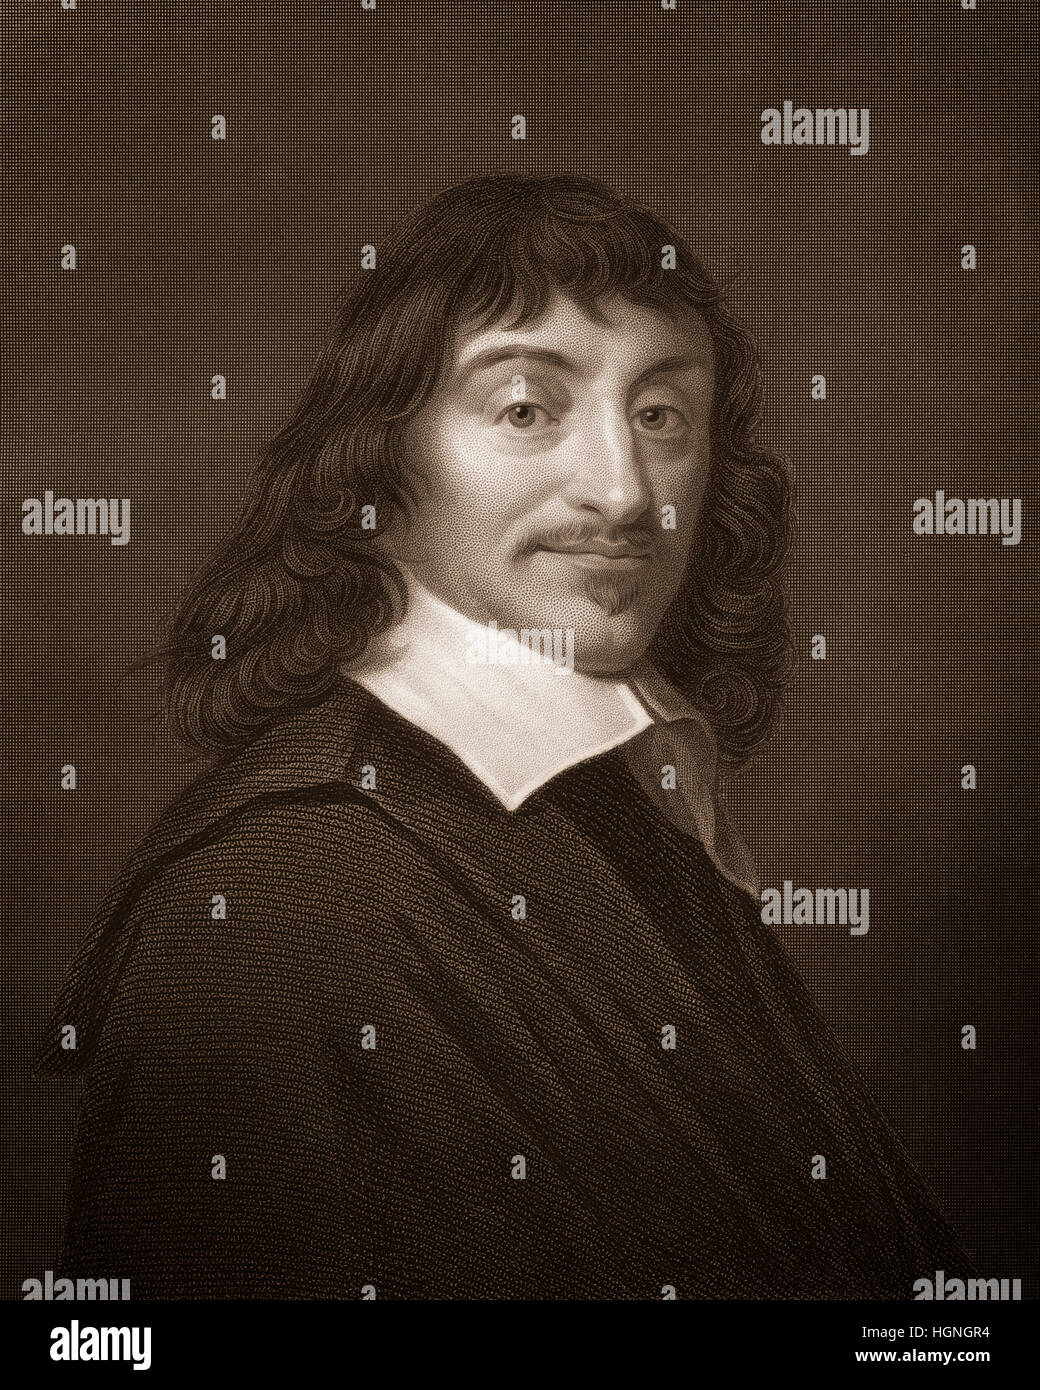 Steel engraving, c. 1860, René Descartes or Renatus Cartesius, 1596 - 1650, a French philosopher, mathematician - Stock Image